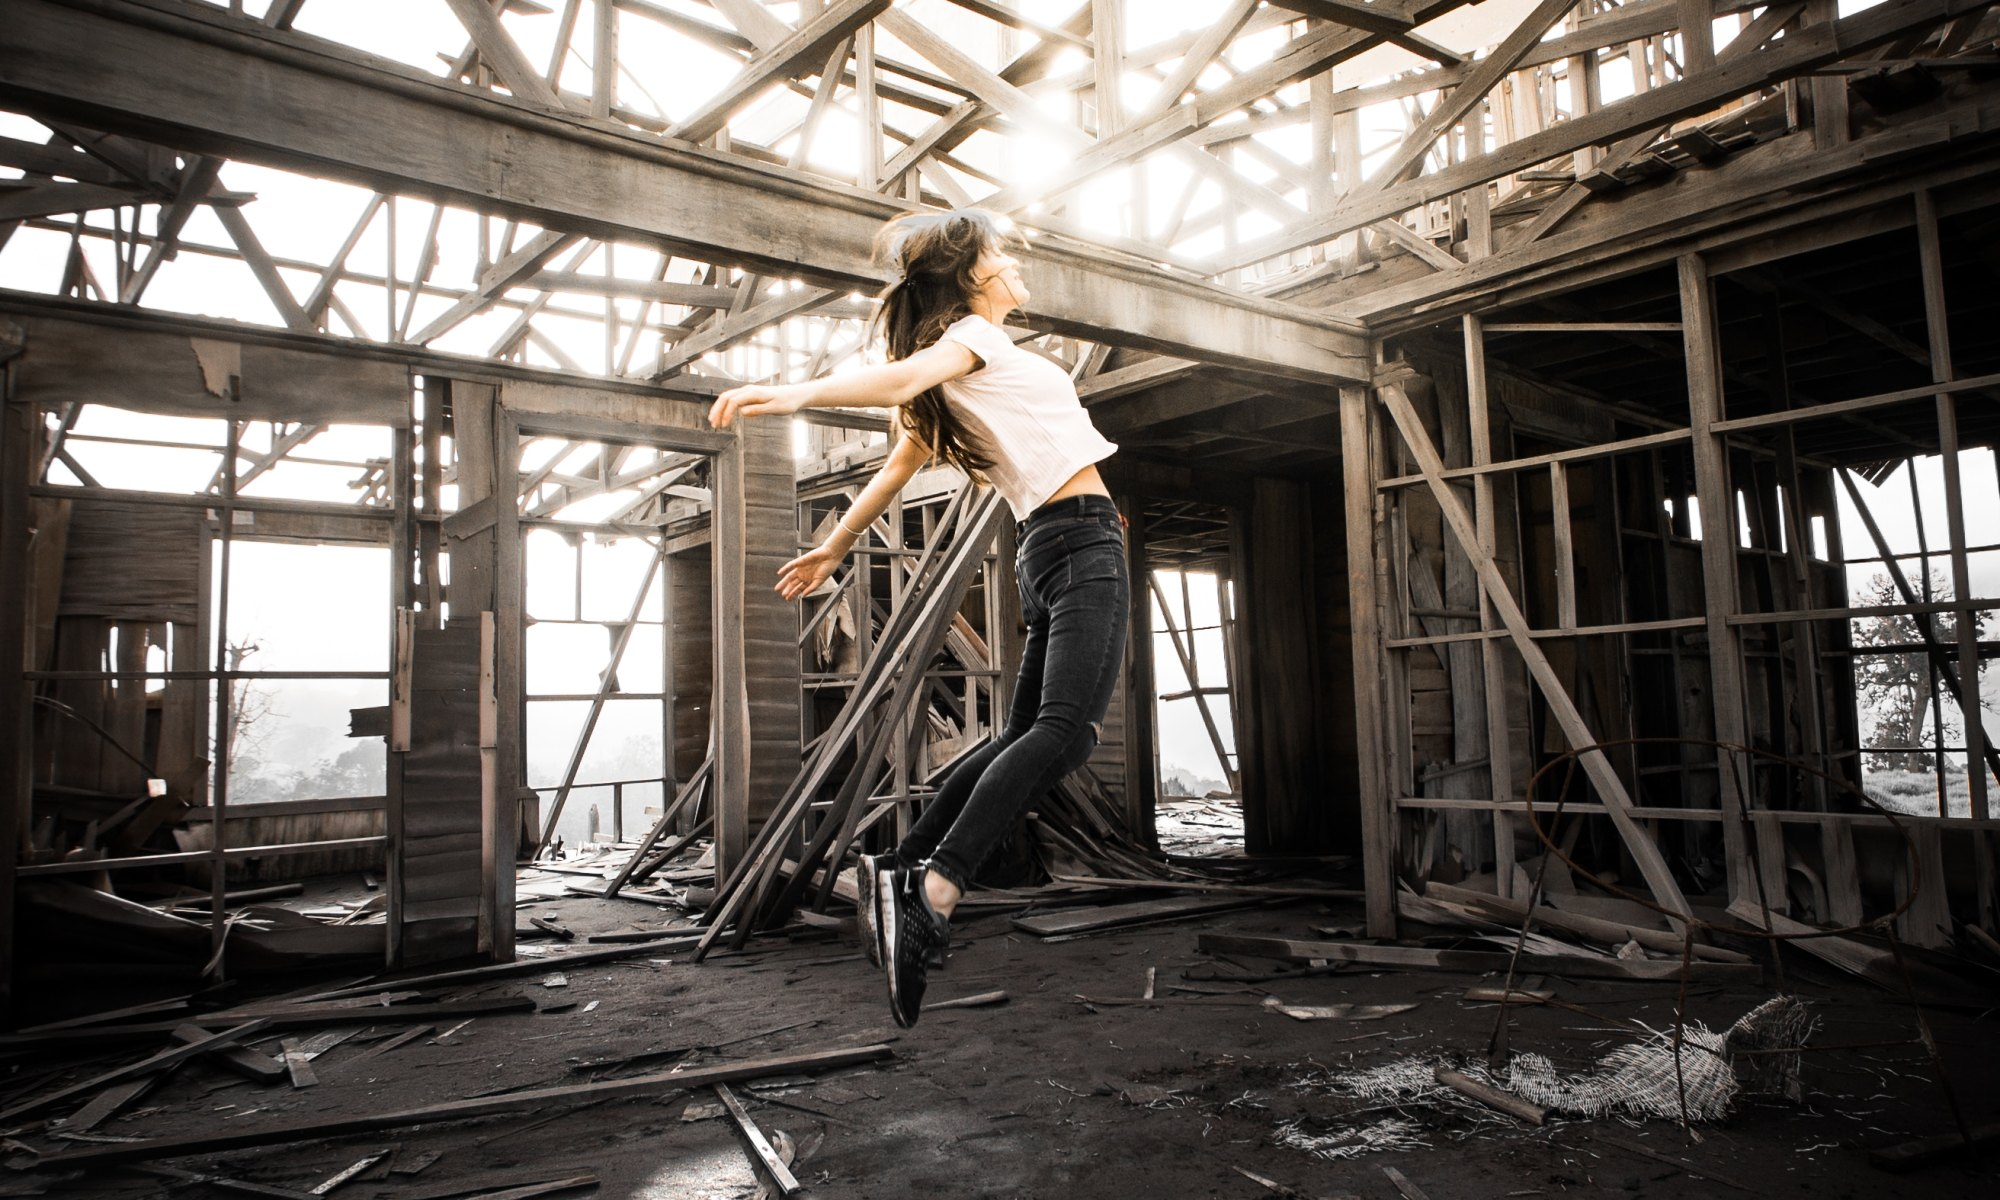 Impulsive woman jumping in a burned down house